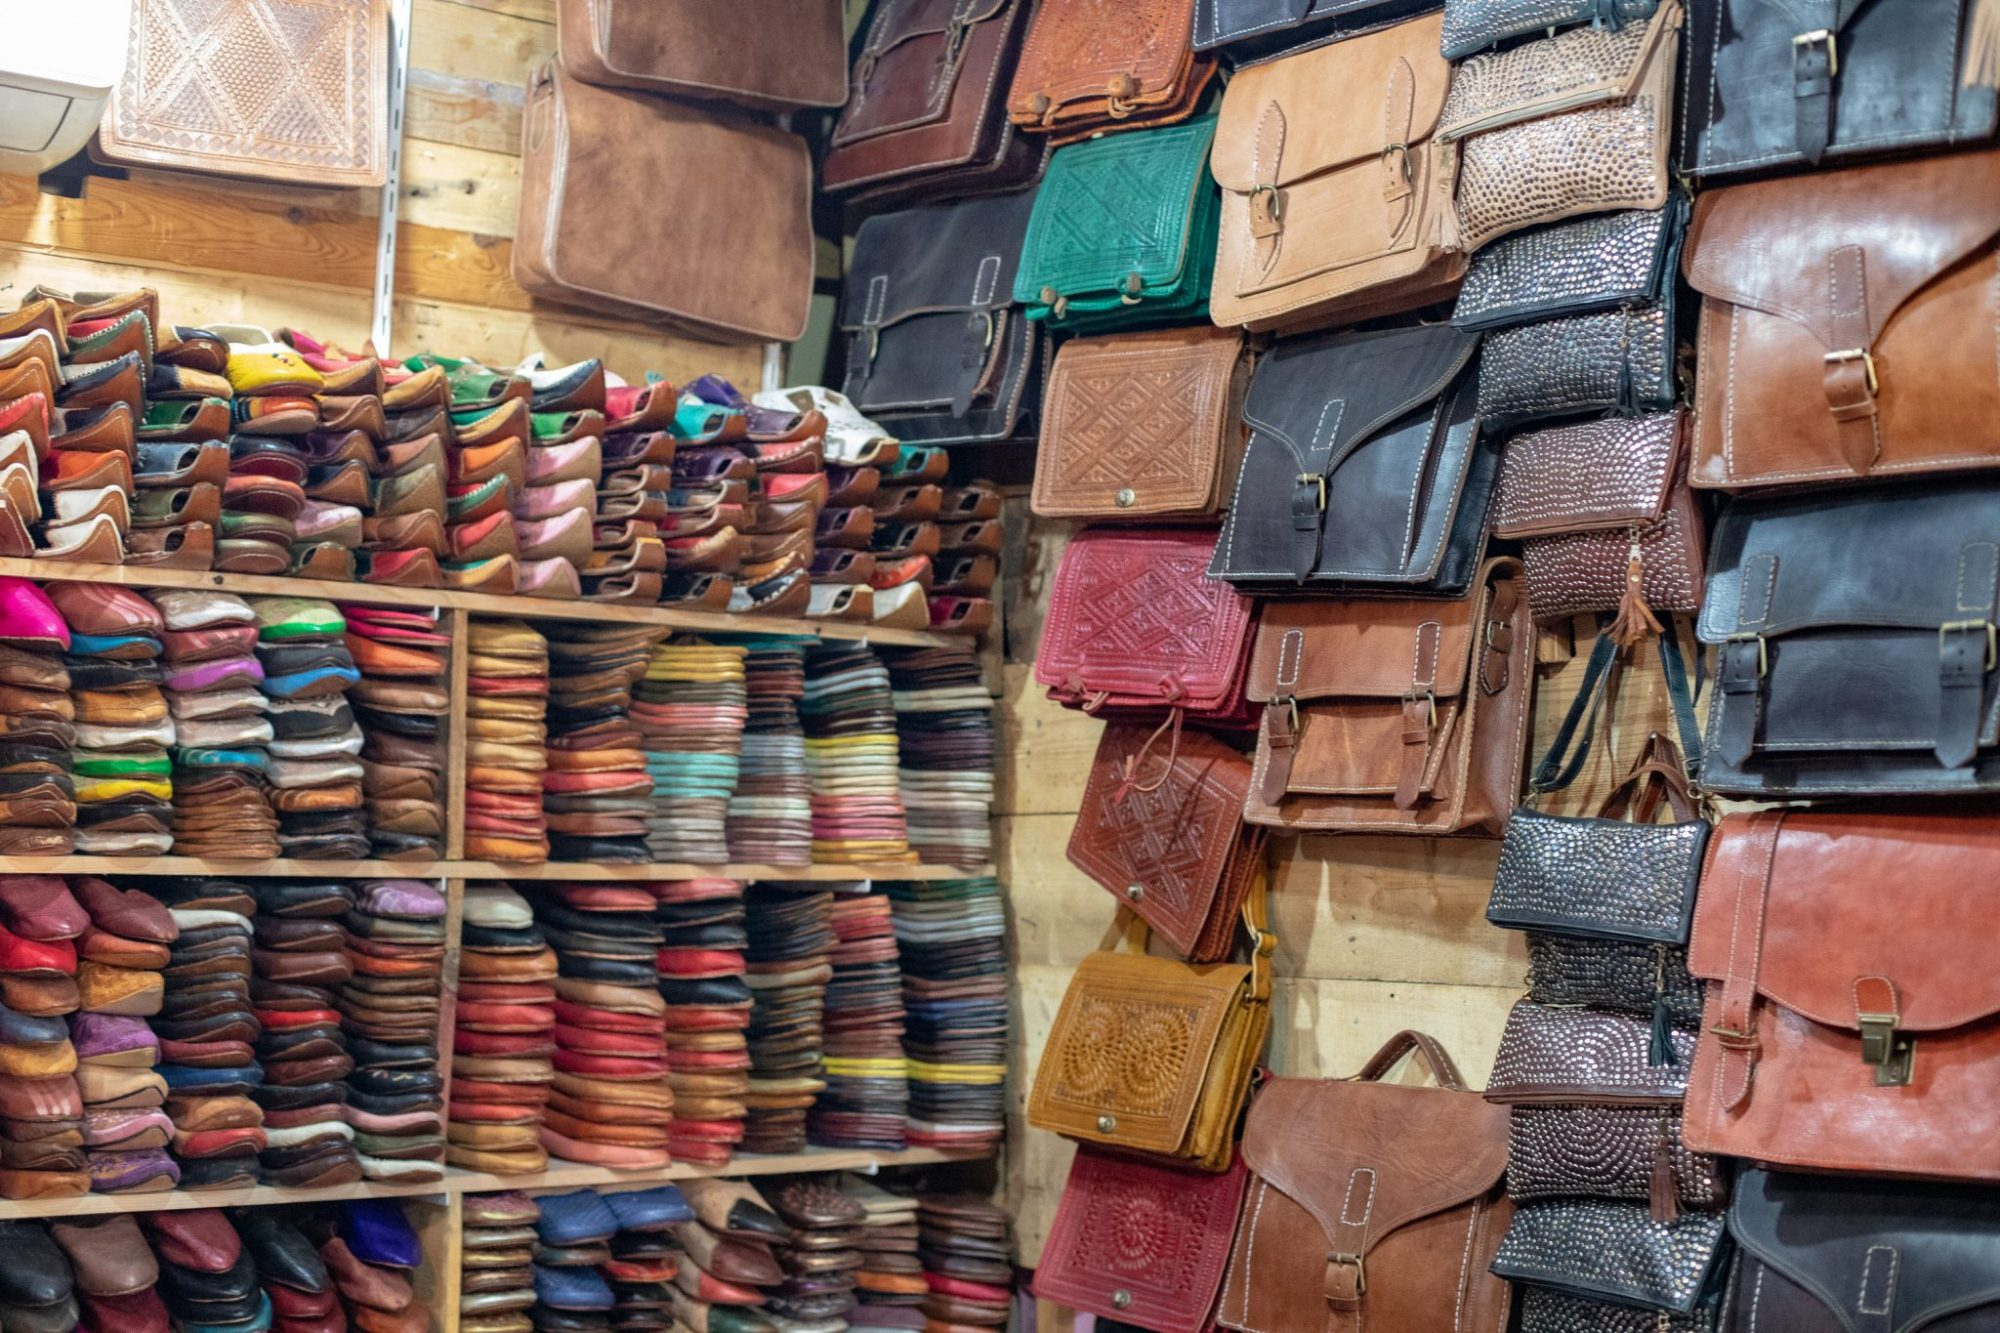 fes morocco, fez morocco, where to go in morocco, what to do in morocco, best cities in morocco, oldest tannery in the world, moroccan culture, moroccan design, fes medina, fez medina, medina guide, shopping in morocco, shopping in fes, leather tannery fes, clay pottery fes, tile art fes, copper in fes